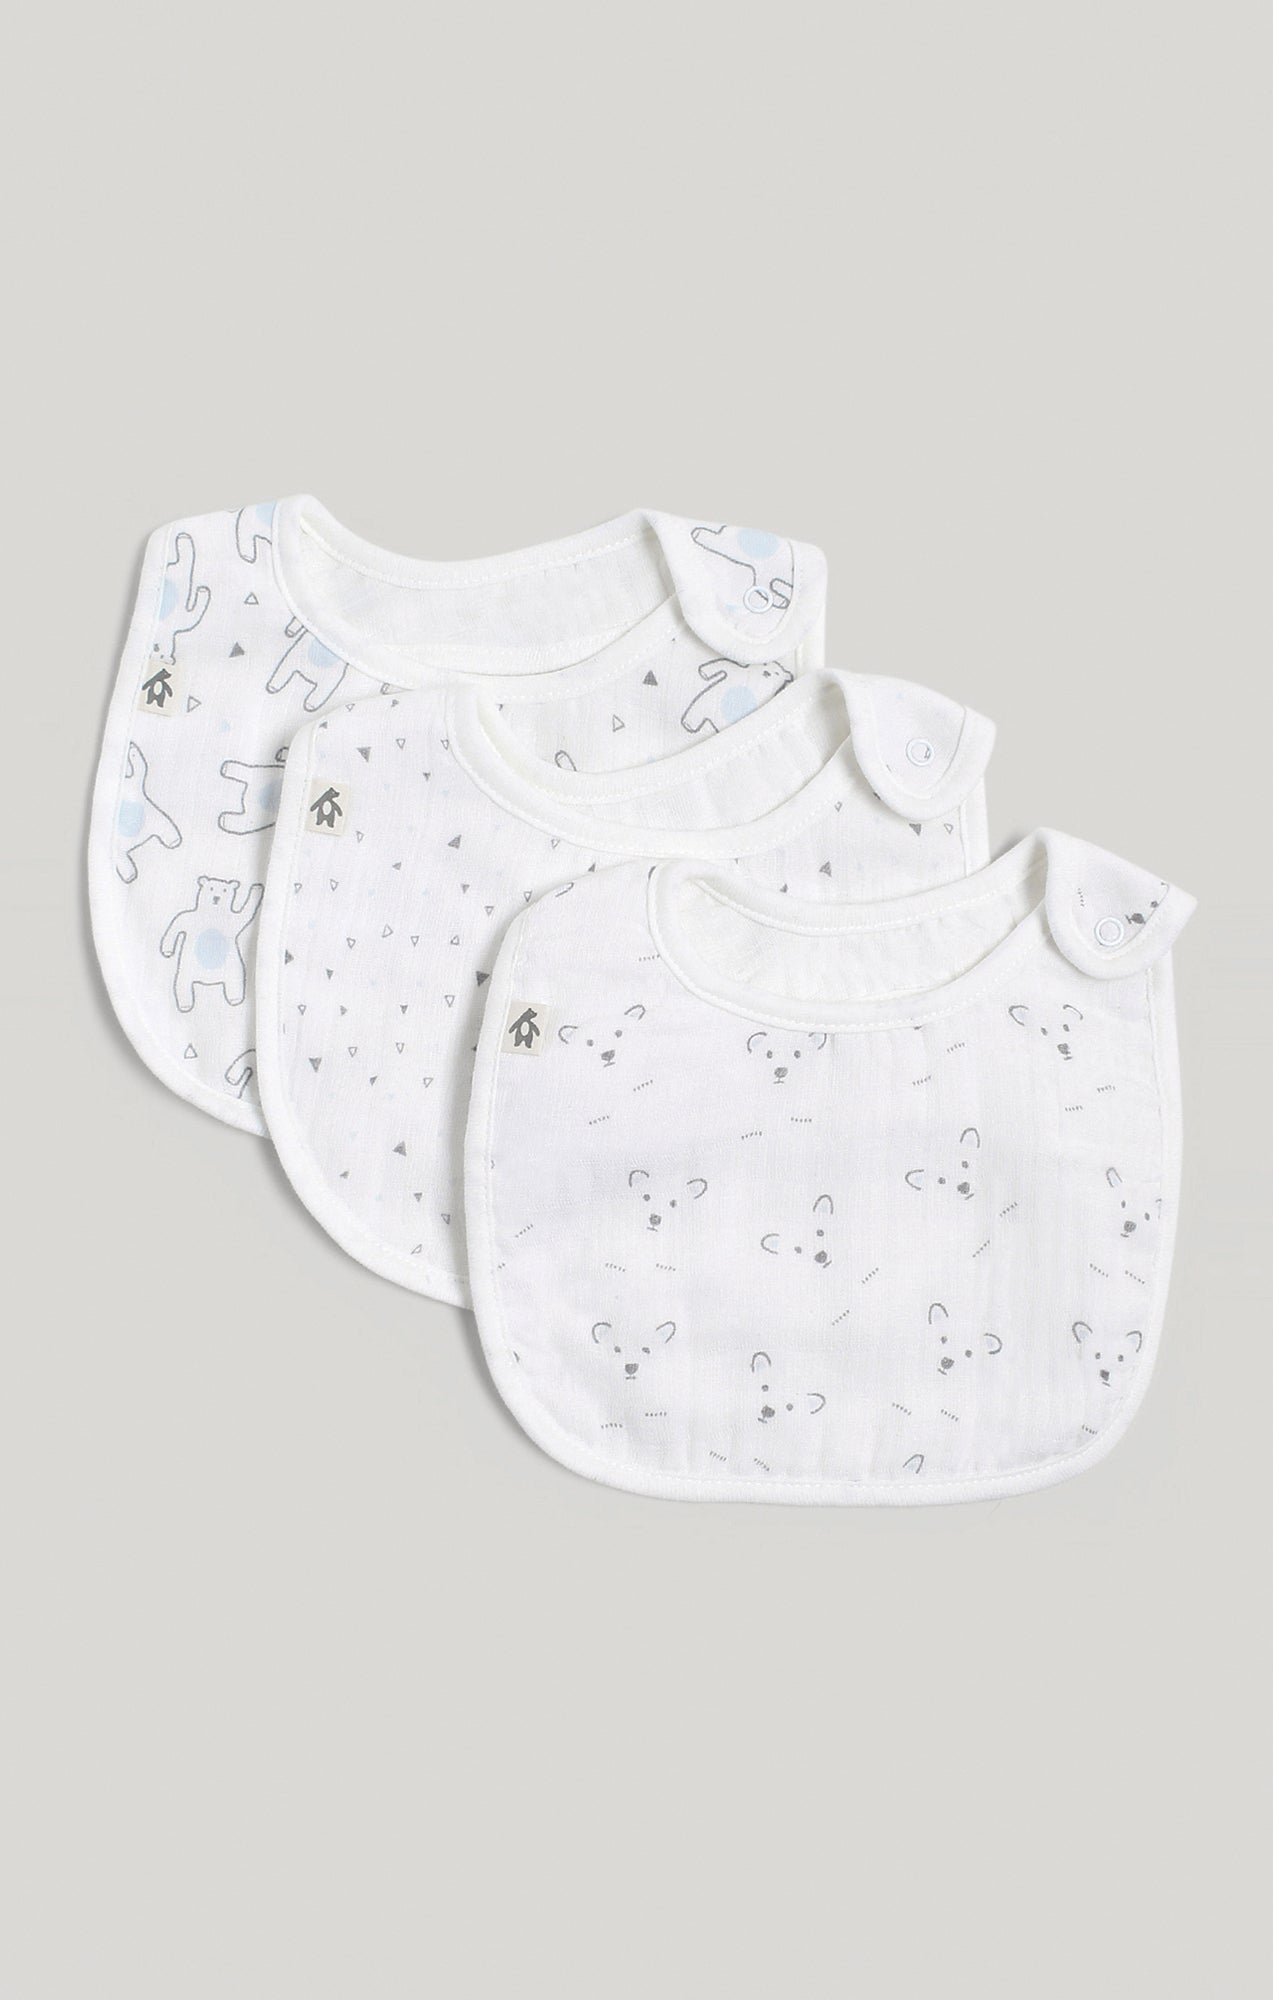 Bib - 3 Pk of Baby Boy Muslin Bibs | Baby Accessories